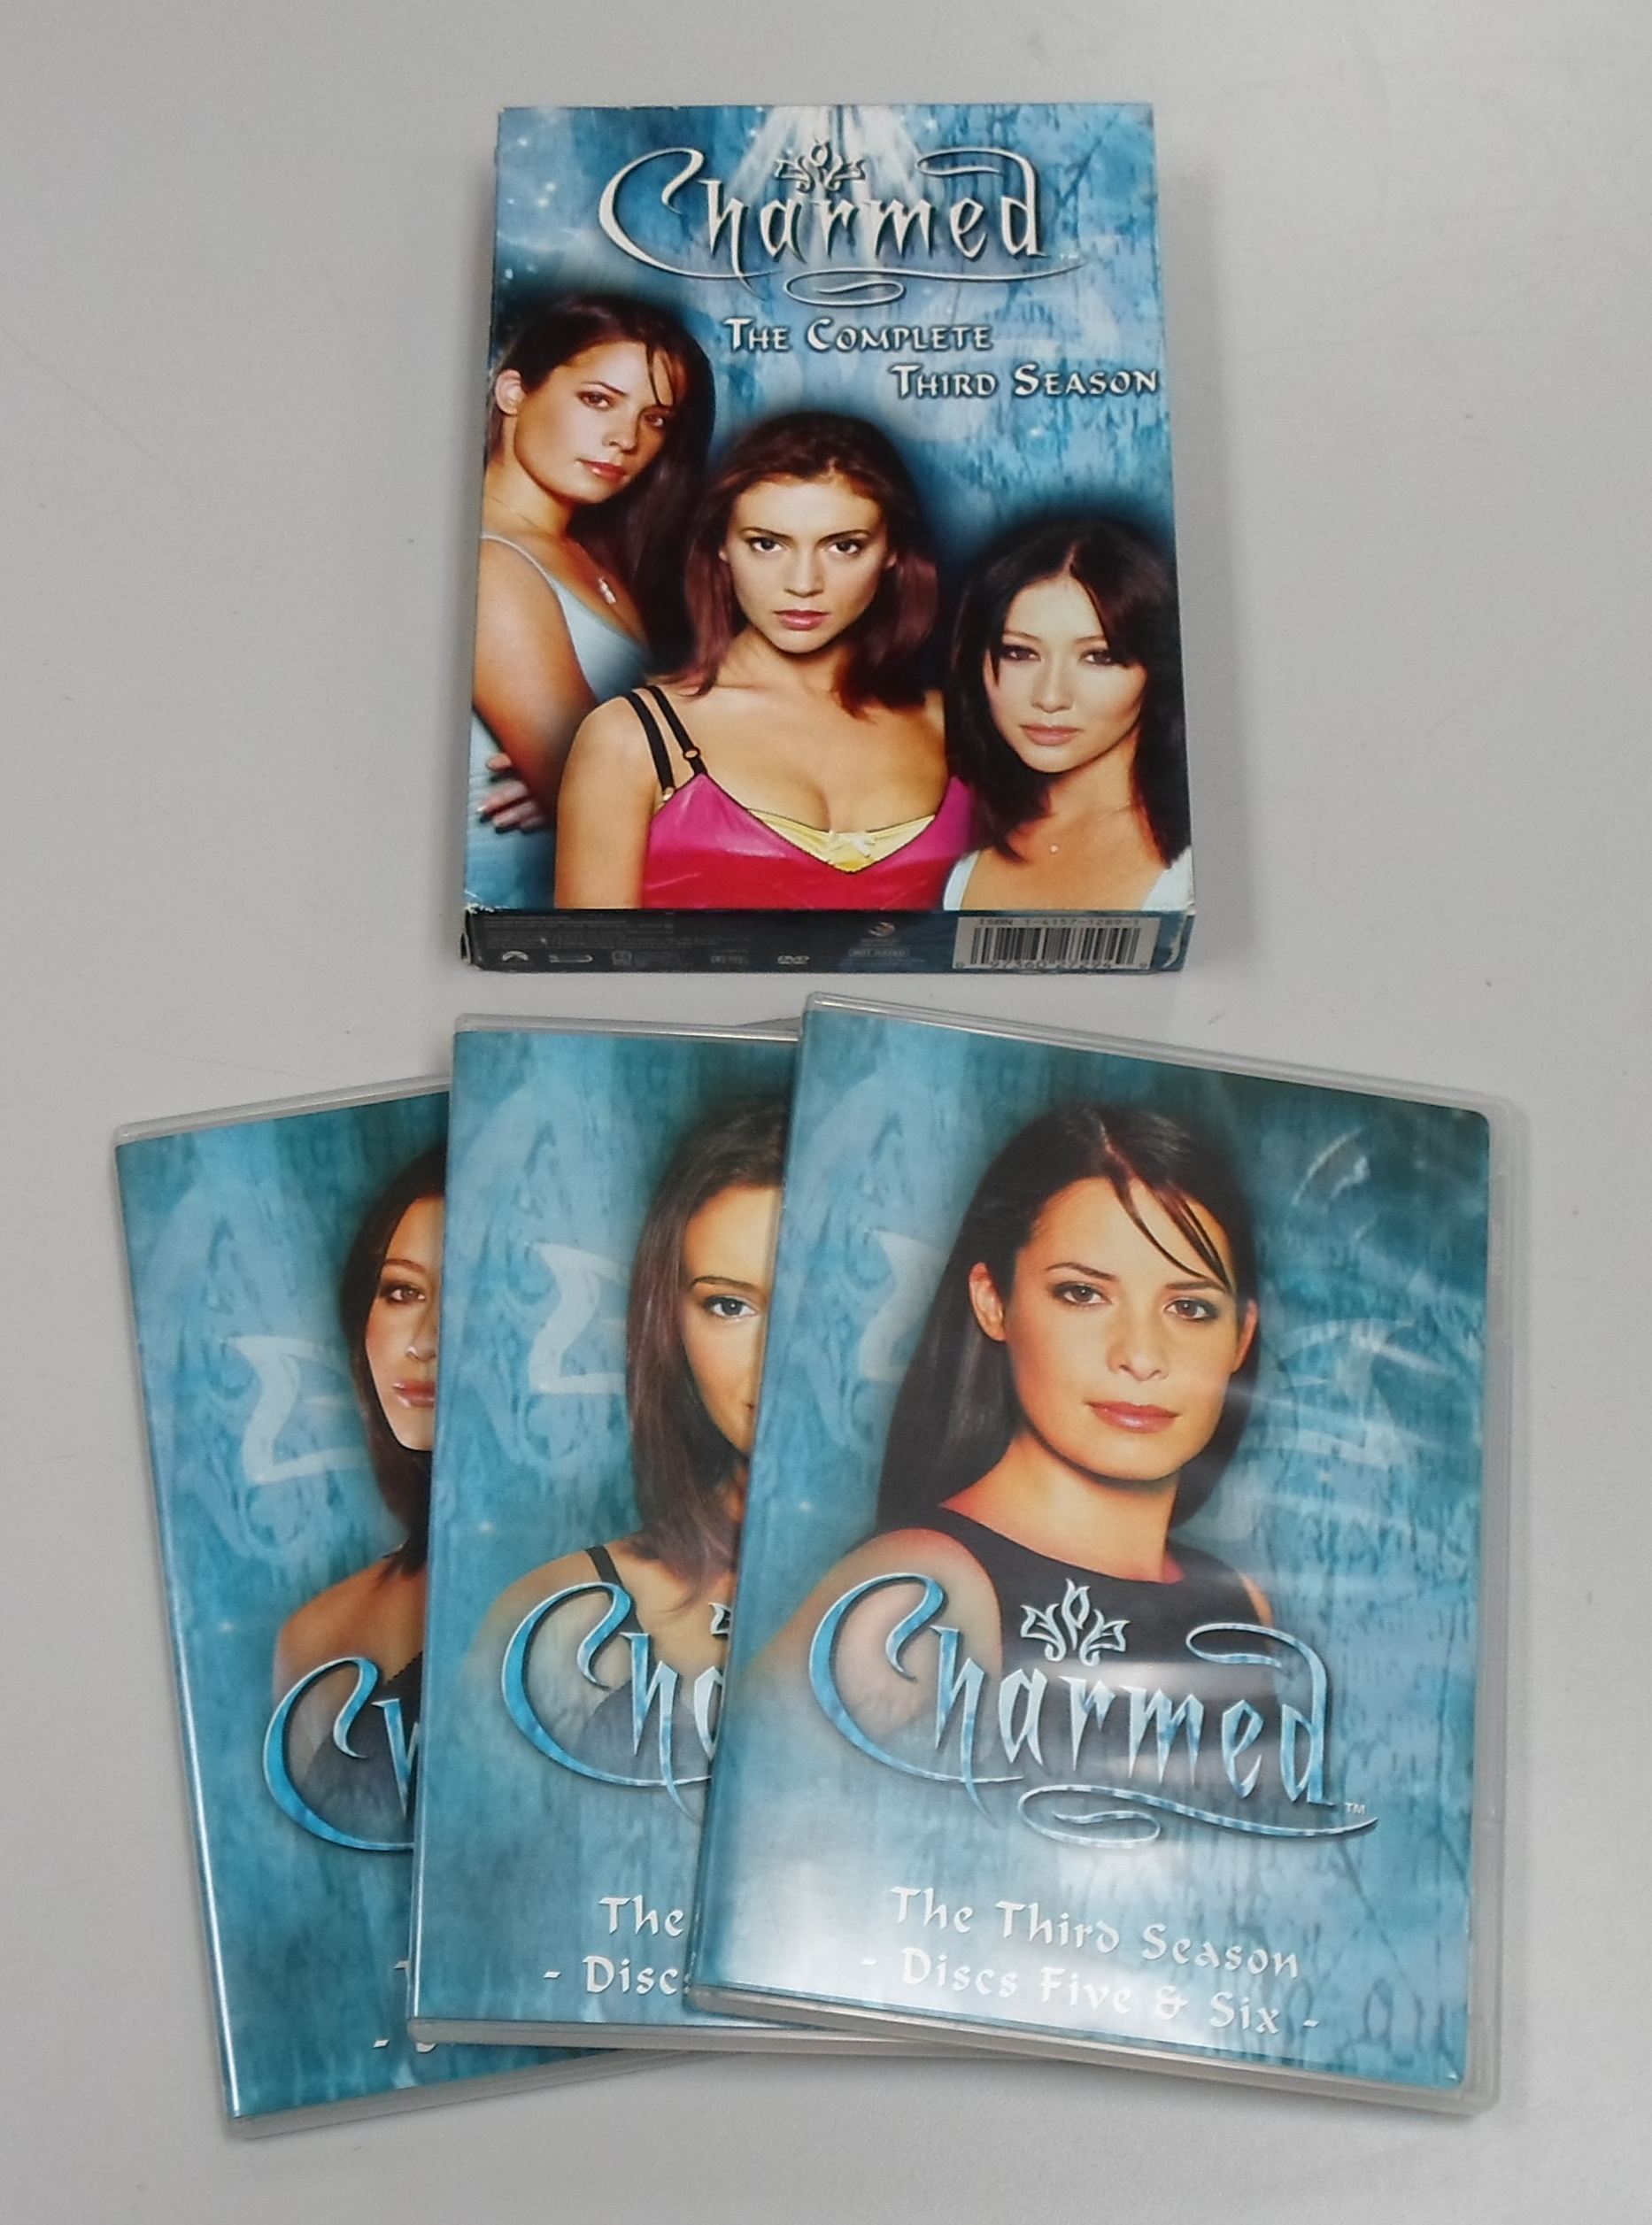 CHARMED - SEASON 3 - DVD BOX SET